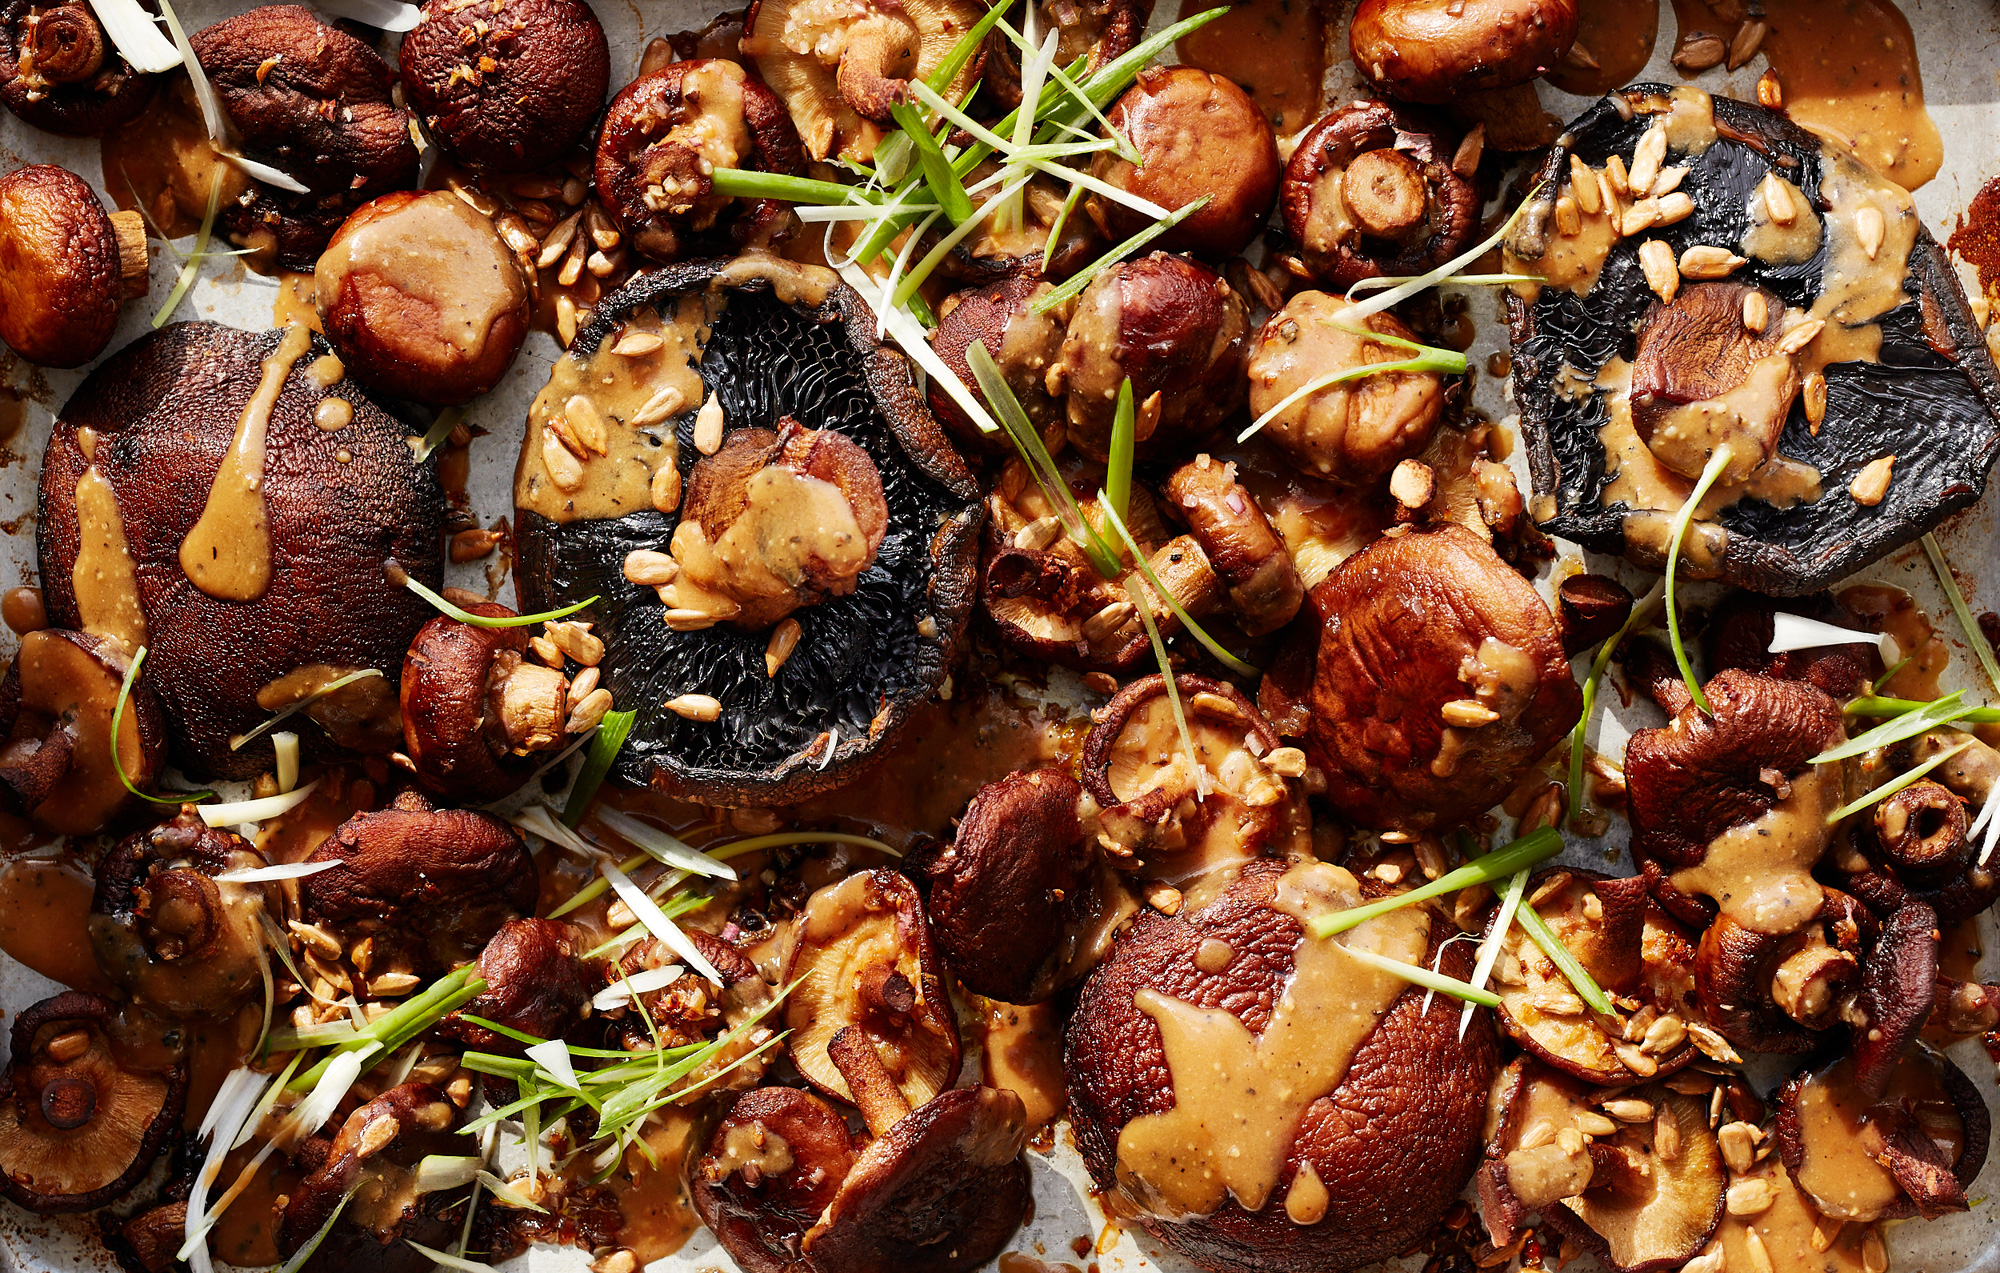 04_Mixed_Mushrooms_with_Miso_J_Miller_0084